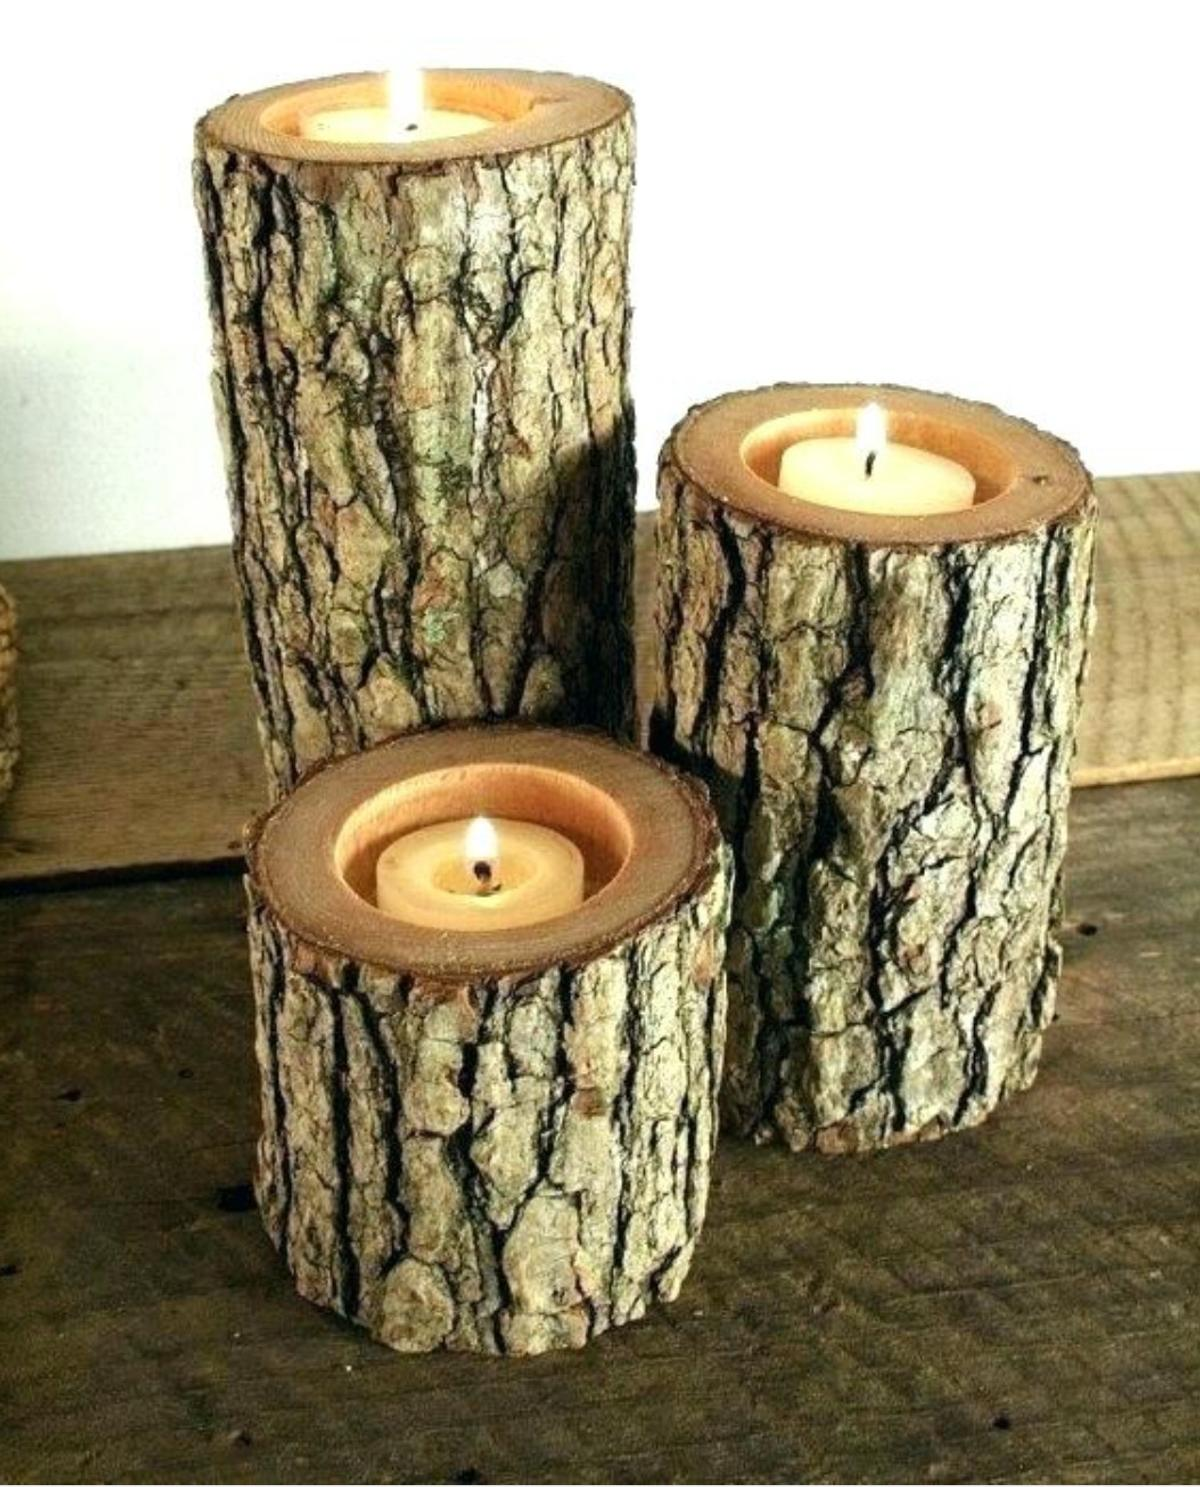 Candle Holders From Logs In Wf2 Wakefield For 7 00 For Sale Shpock